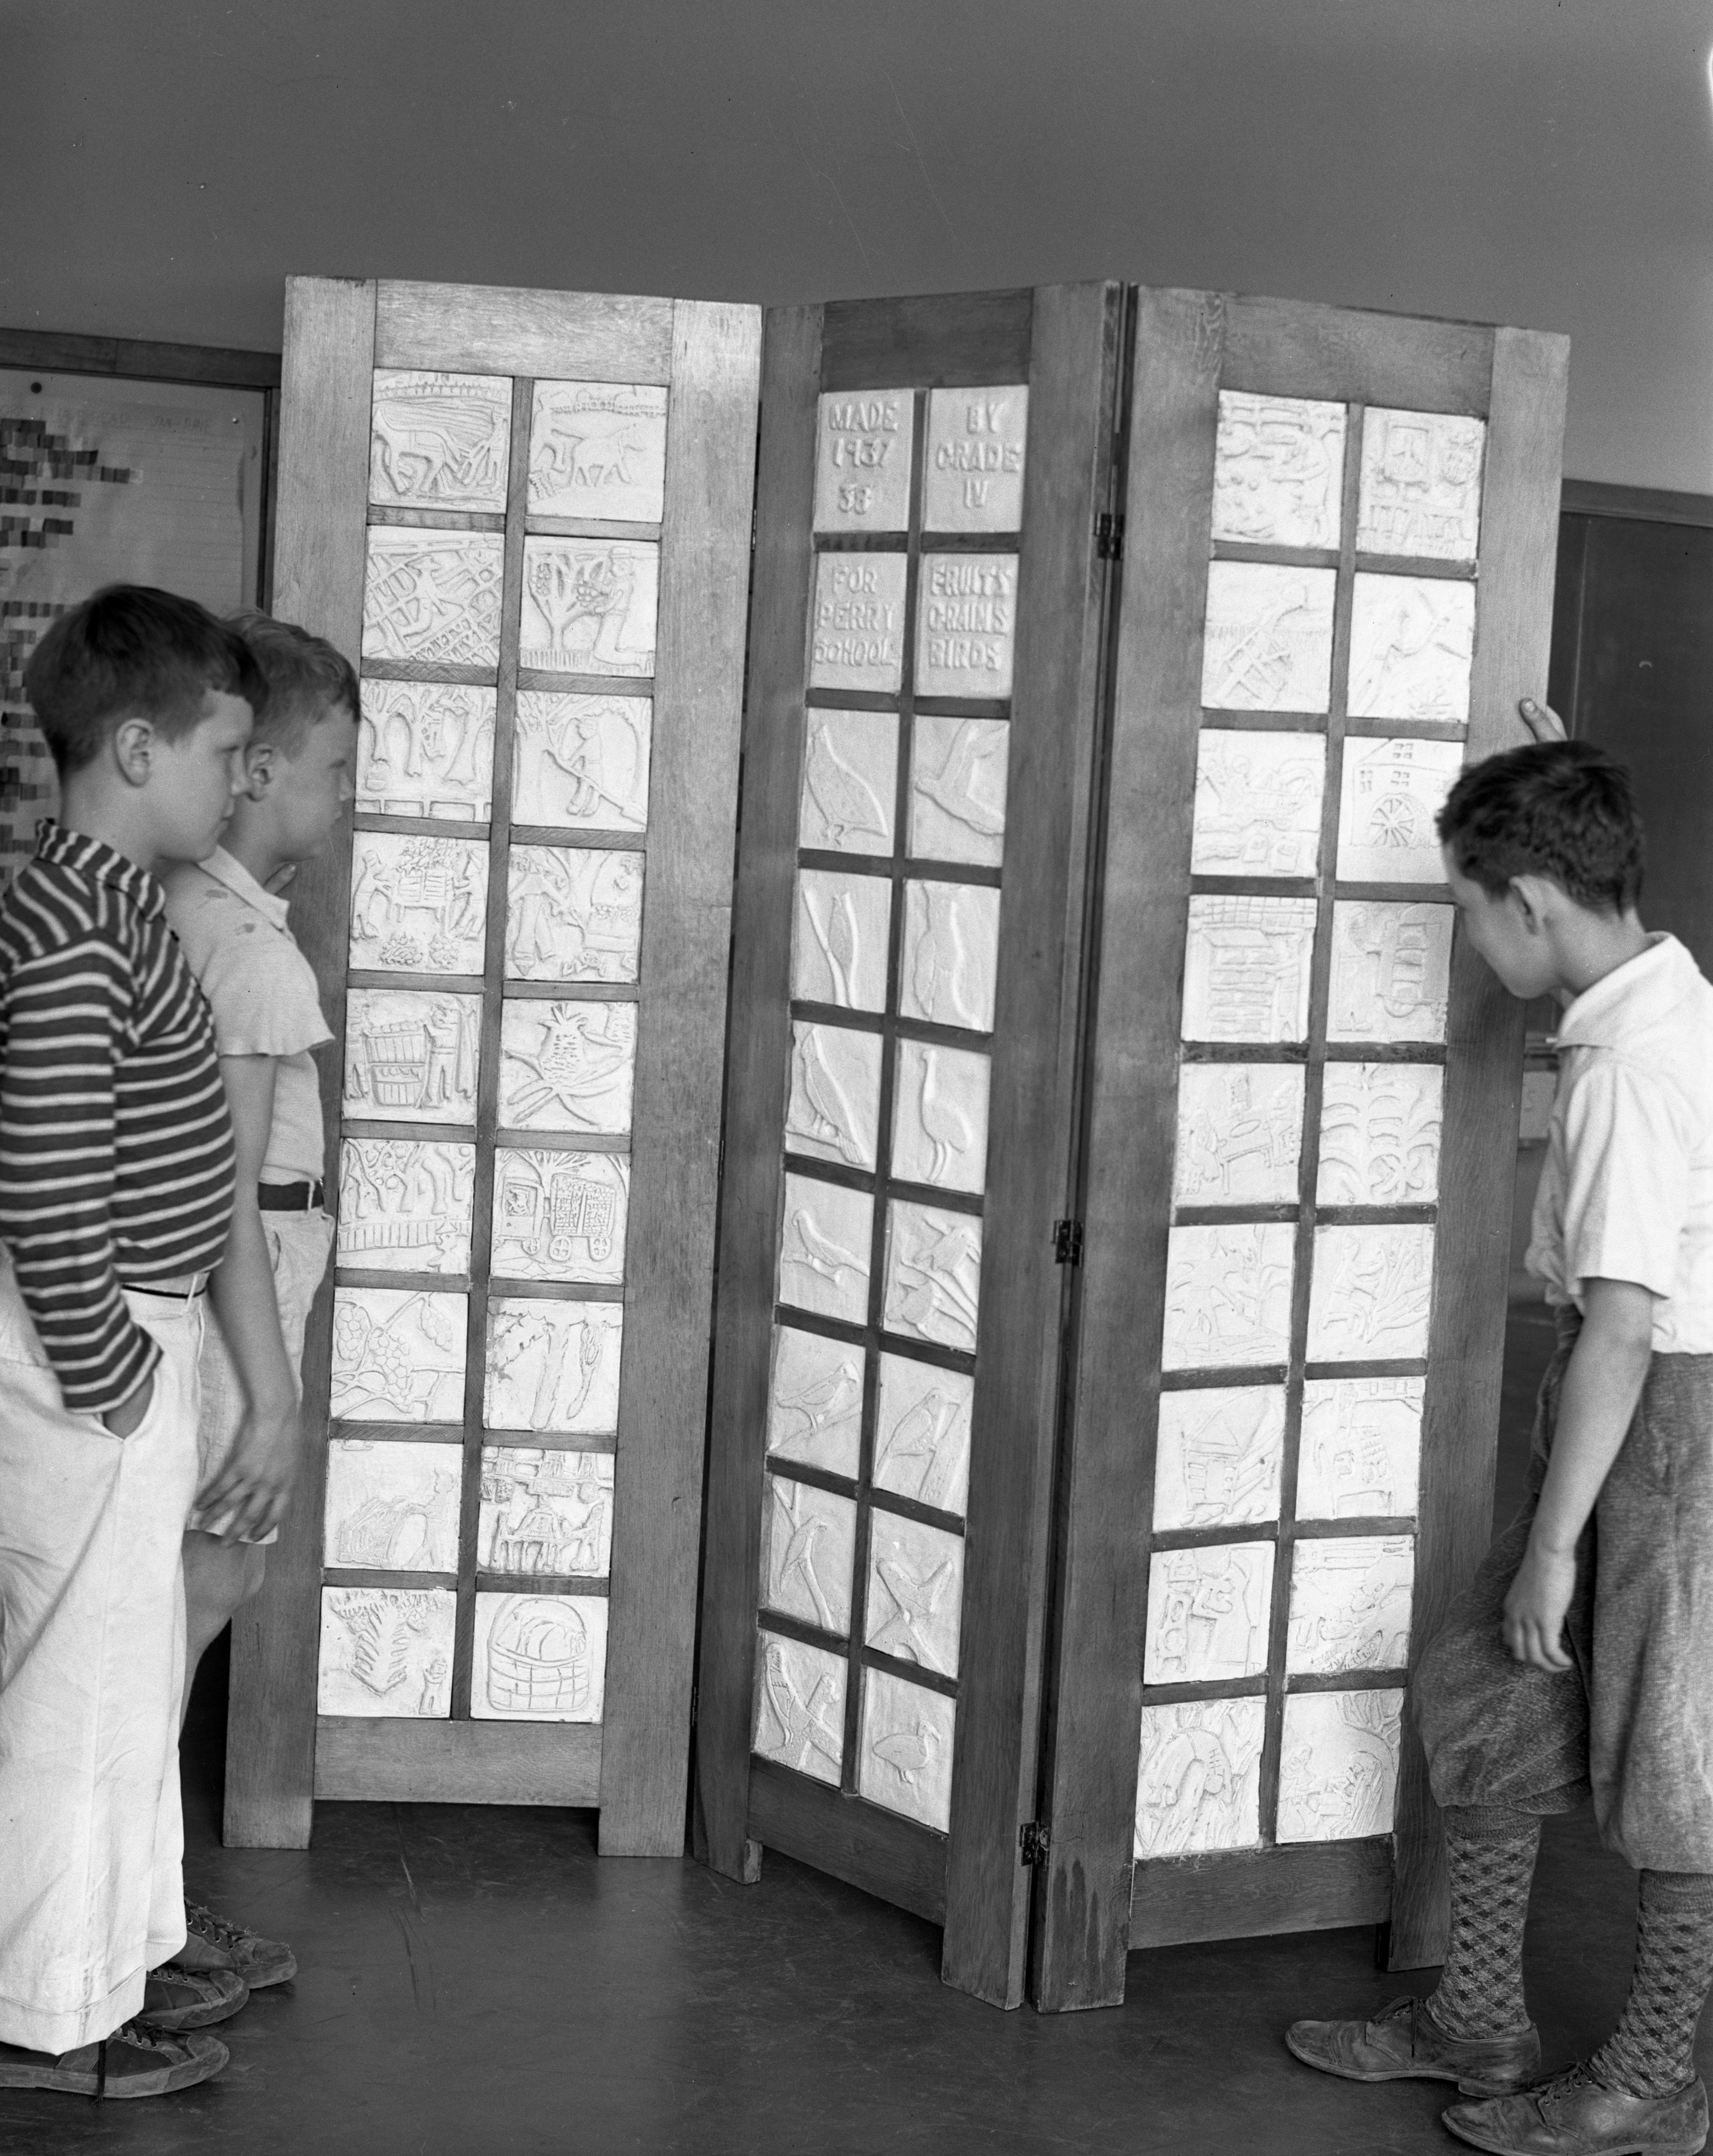 Perry School Fourth Grade Students Howard Beatty, John Dudley and Donald Dildine With Screen of Plaques, June 1938 image